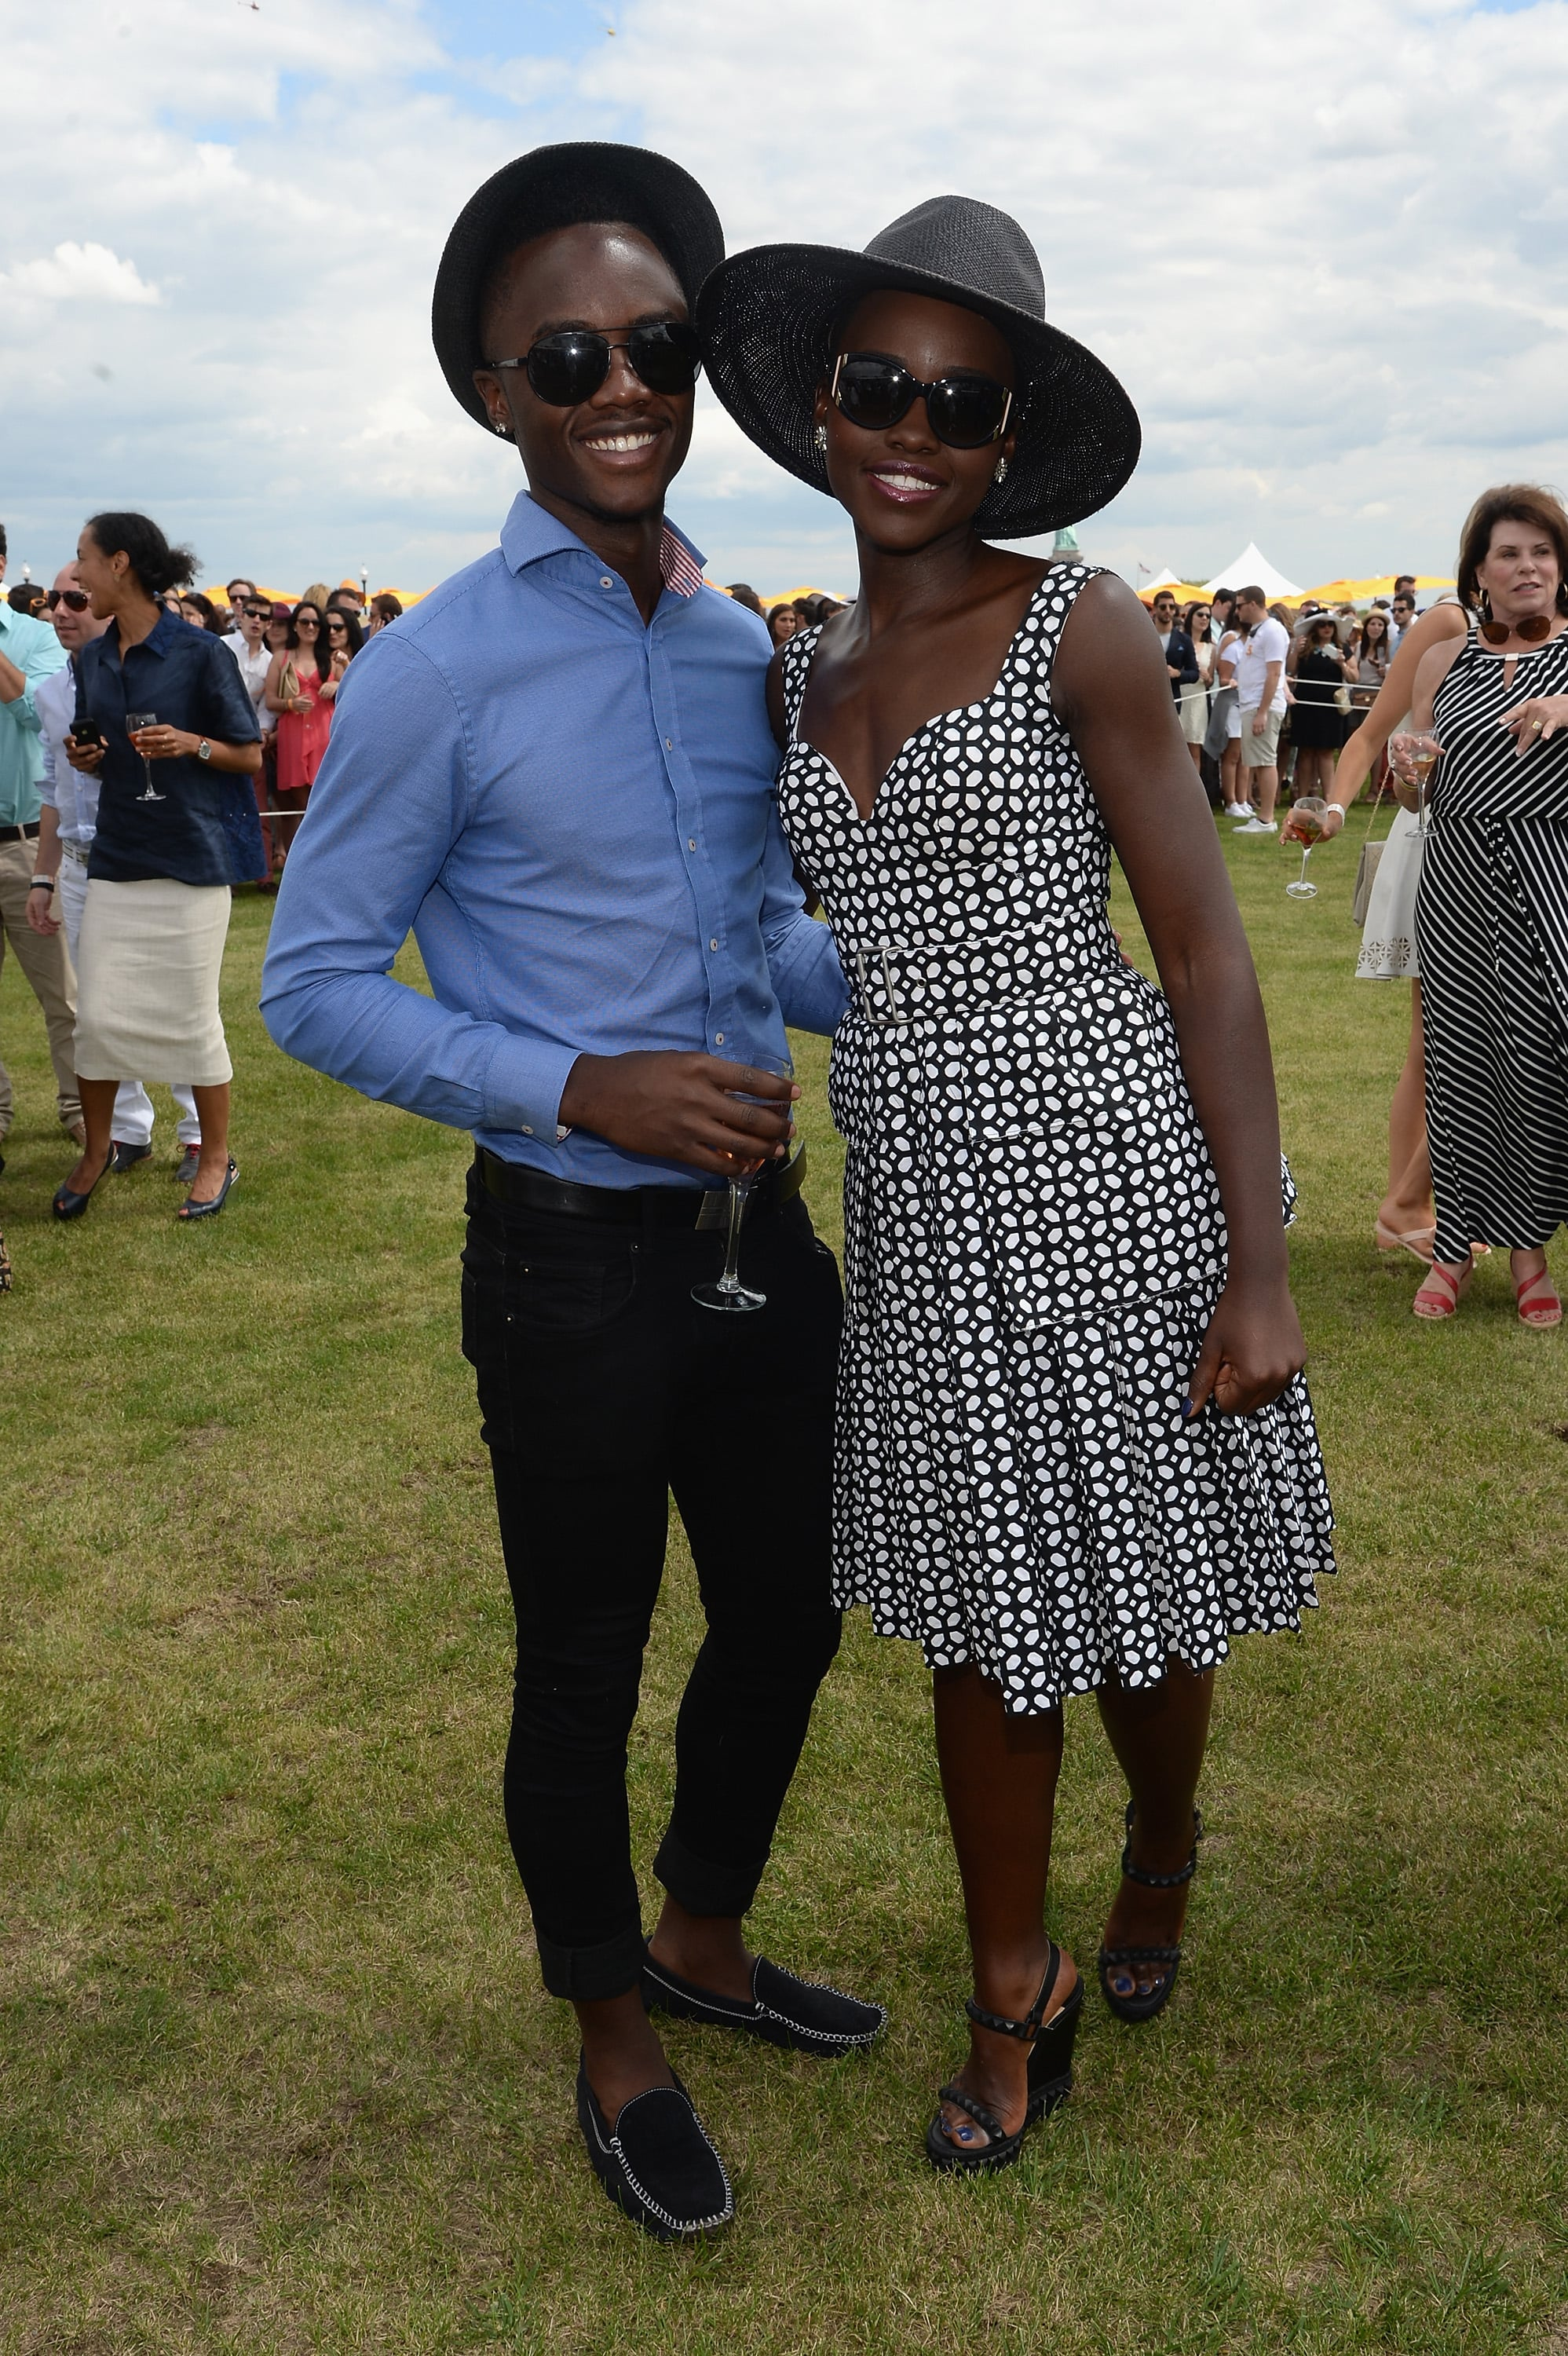 Peter Nyong'o, Lupita's brother, had the chance to add even more fun social snaps to his star-studded Instagram collection.